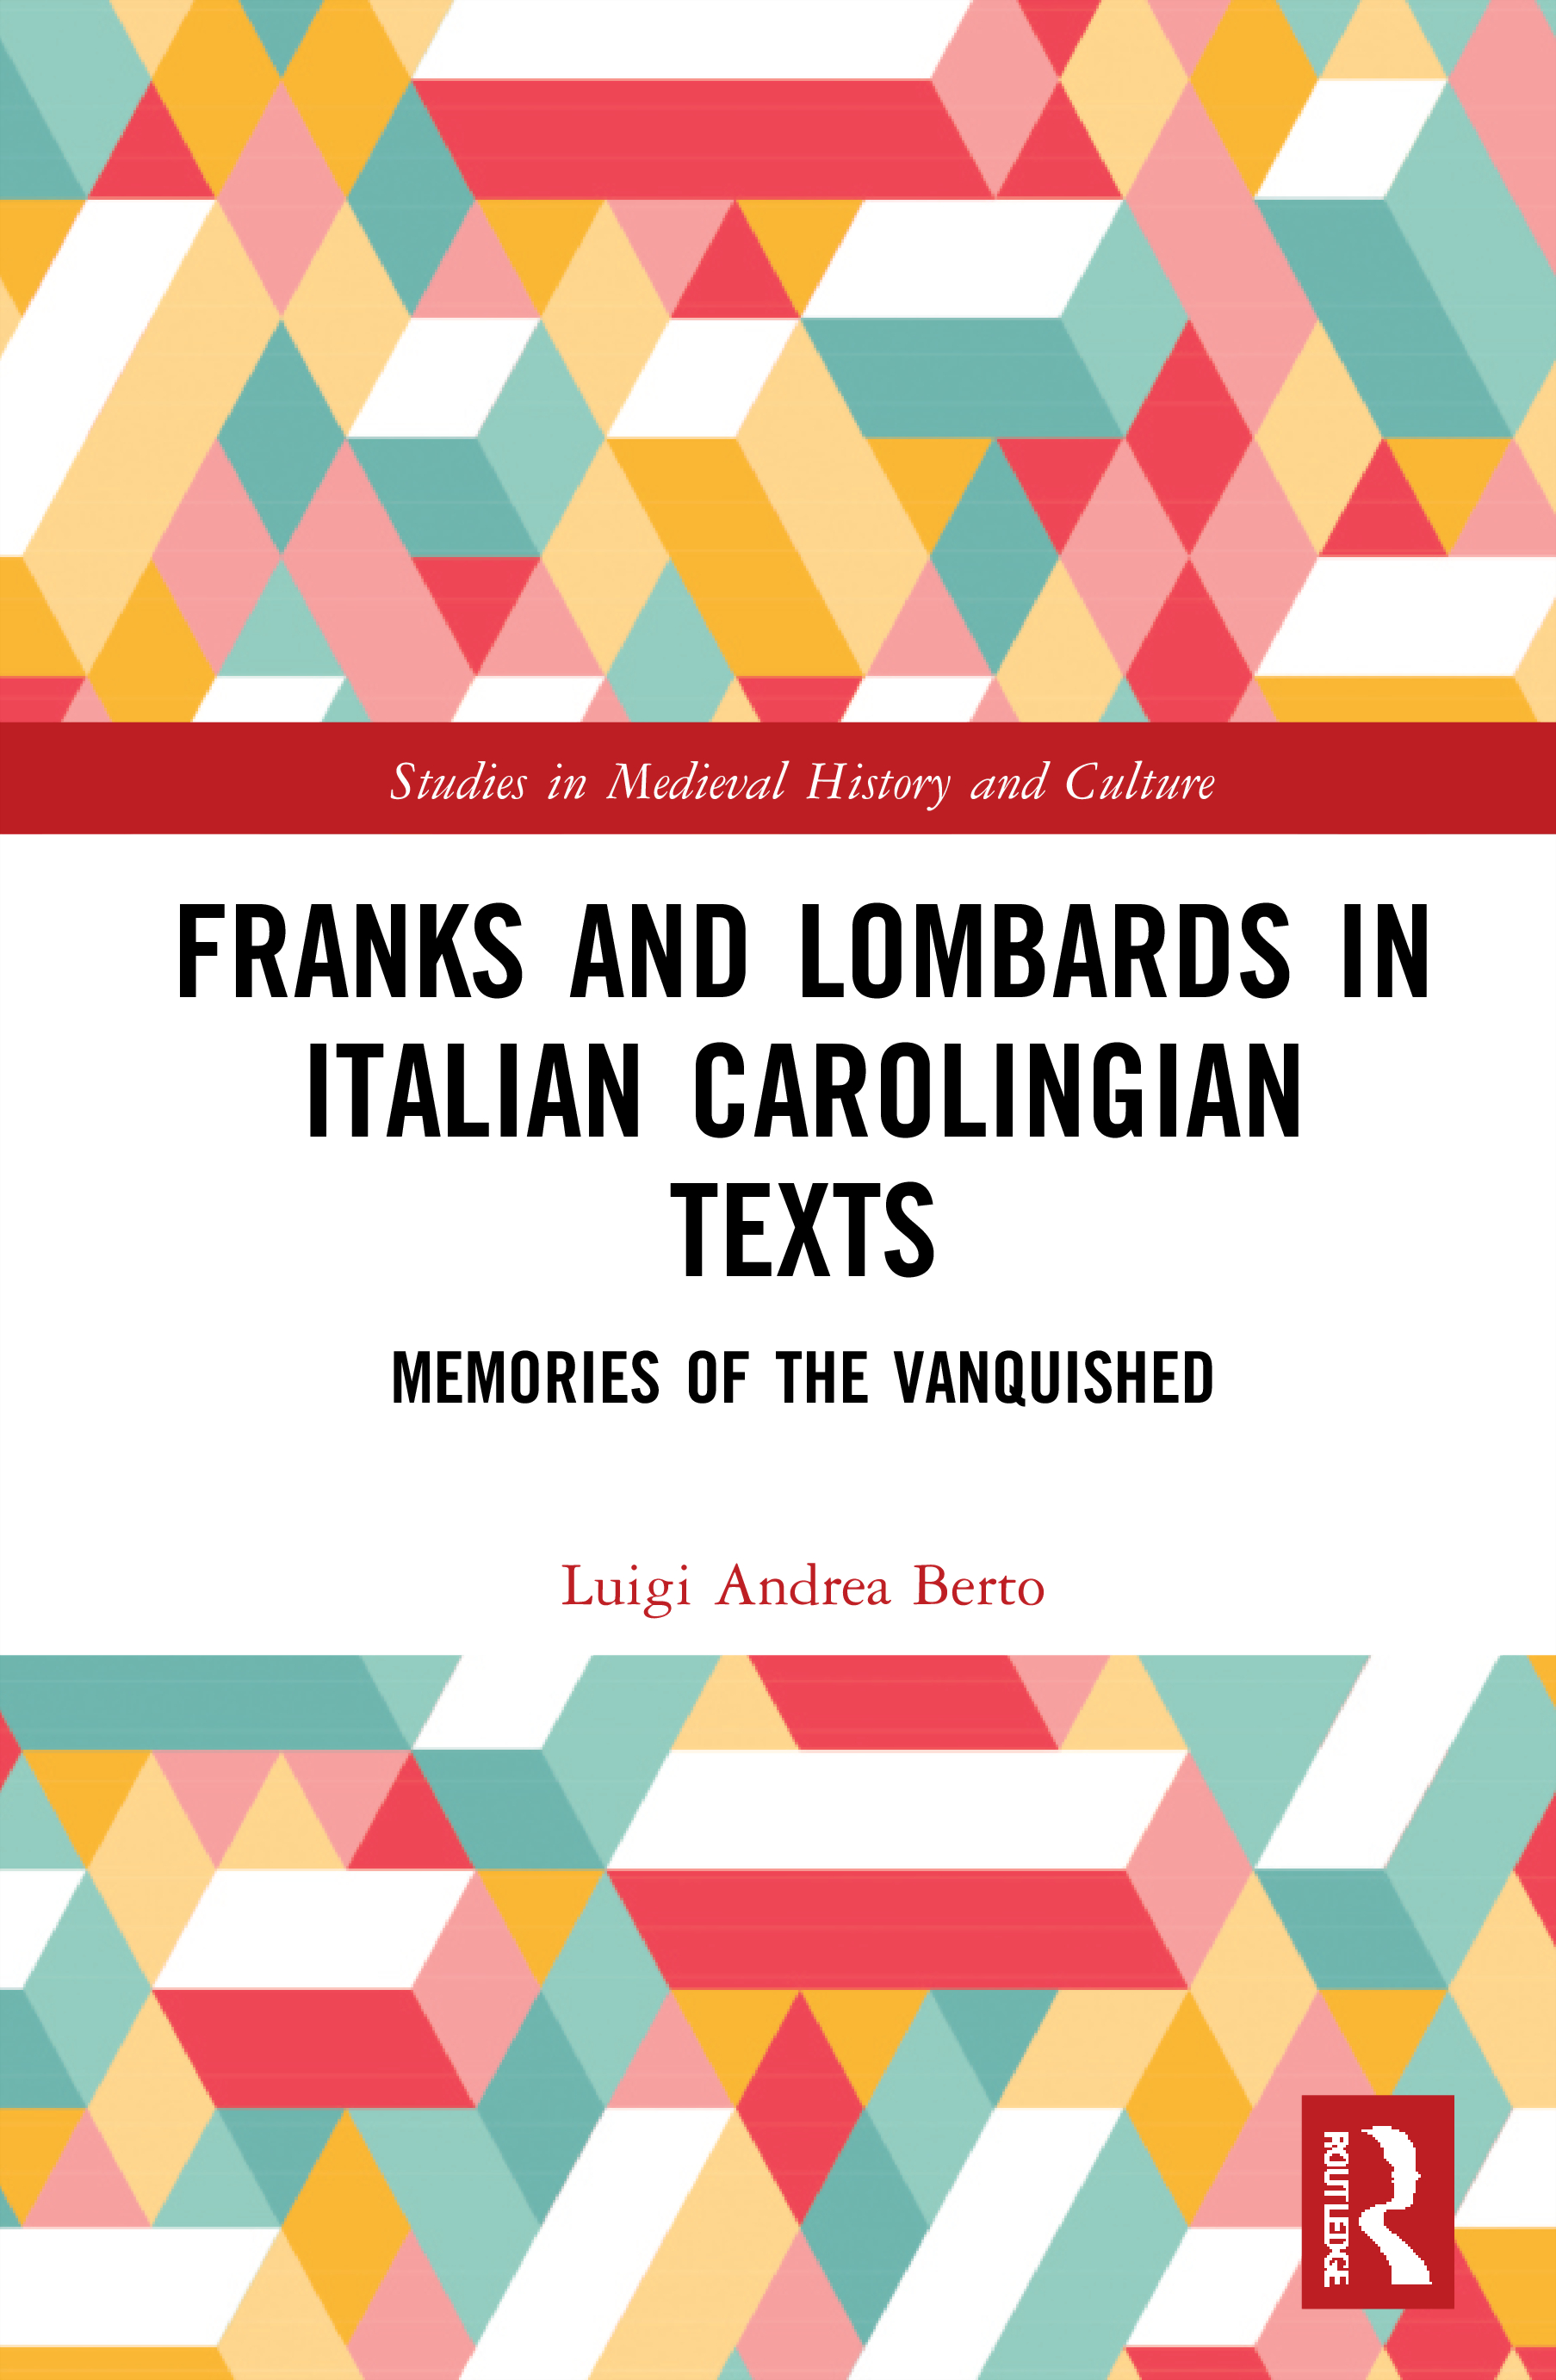 The rule of the Lombards in Italy until King Liudprand